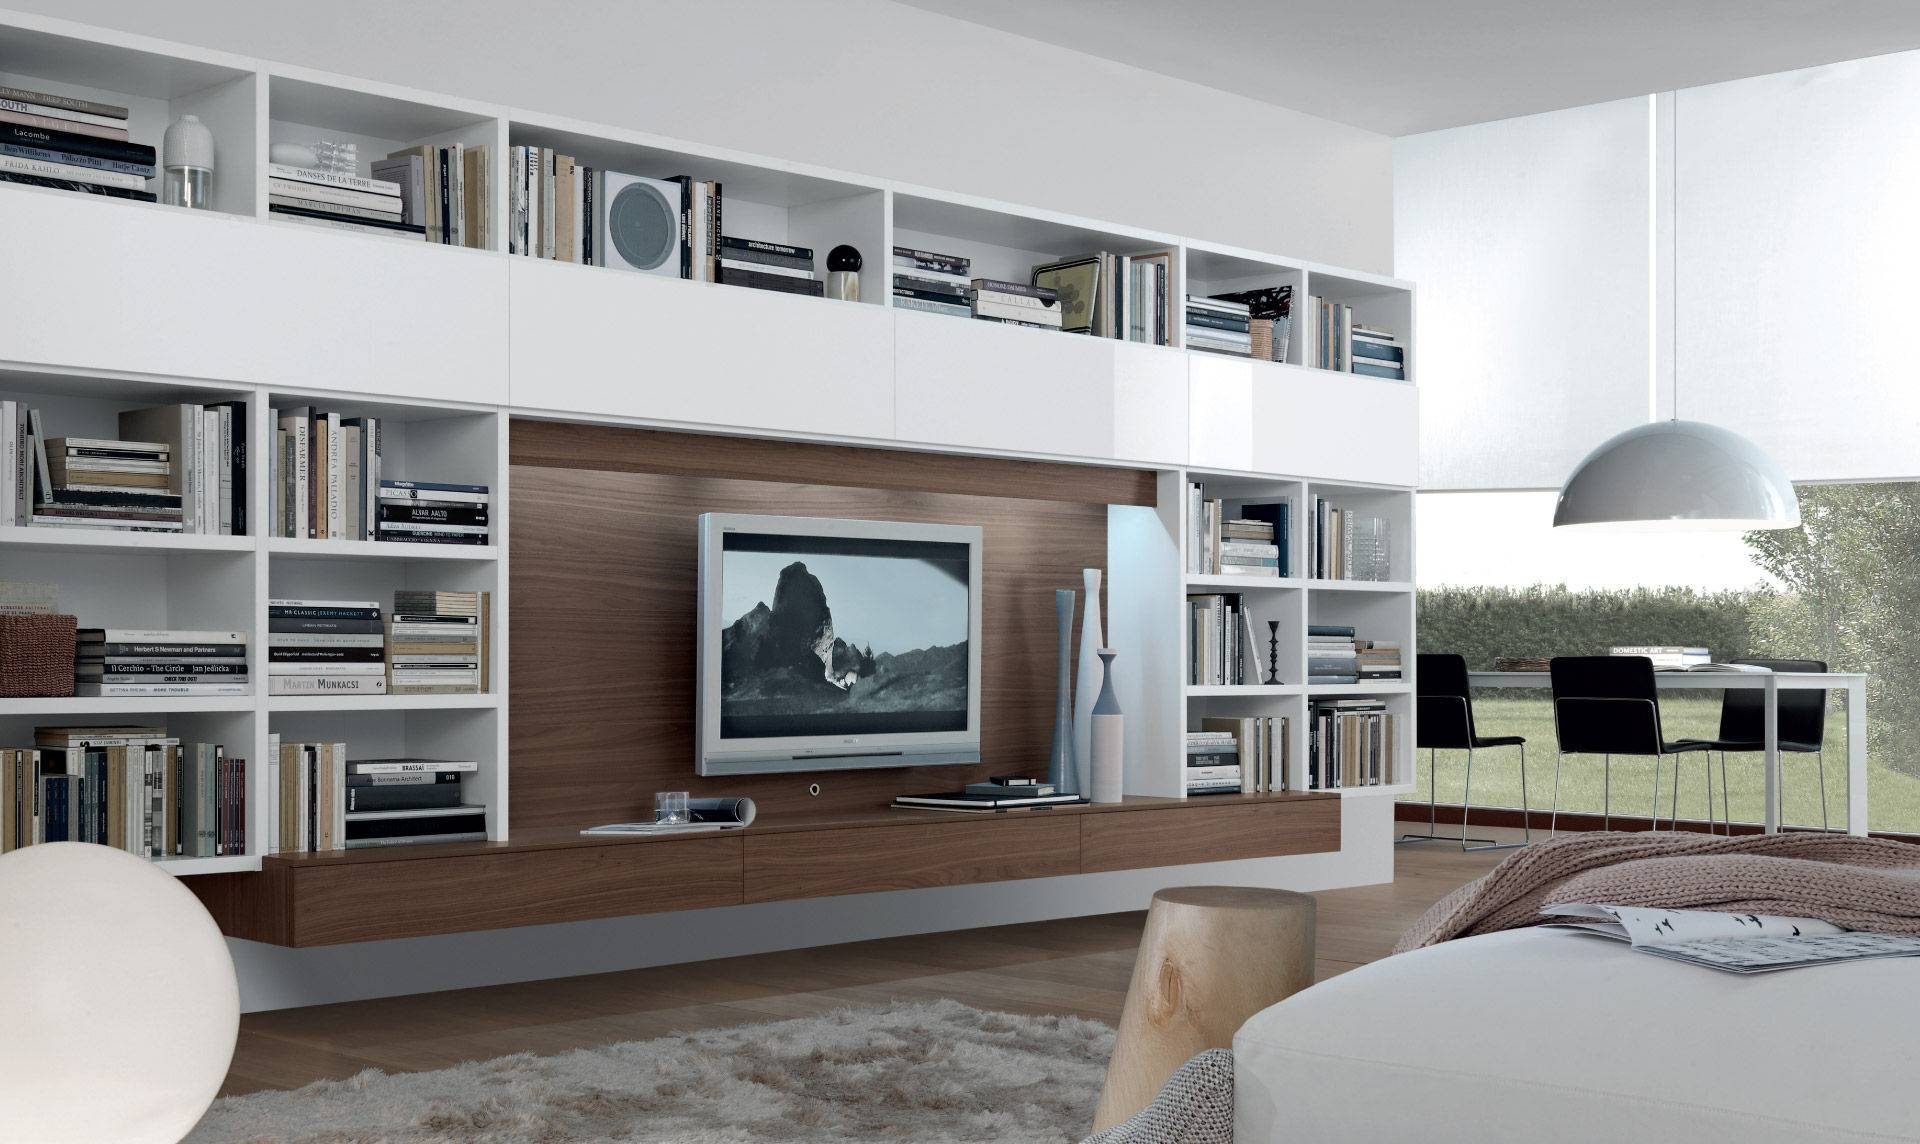 Contemporary Tv Wall Unit Open System Jesse Gallery Including for Contemporary Tv Wall Units (Image 9 of 15)